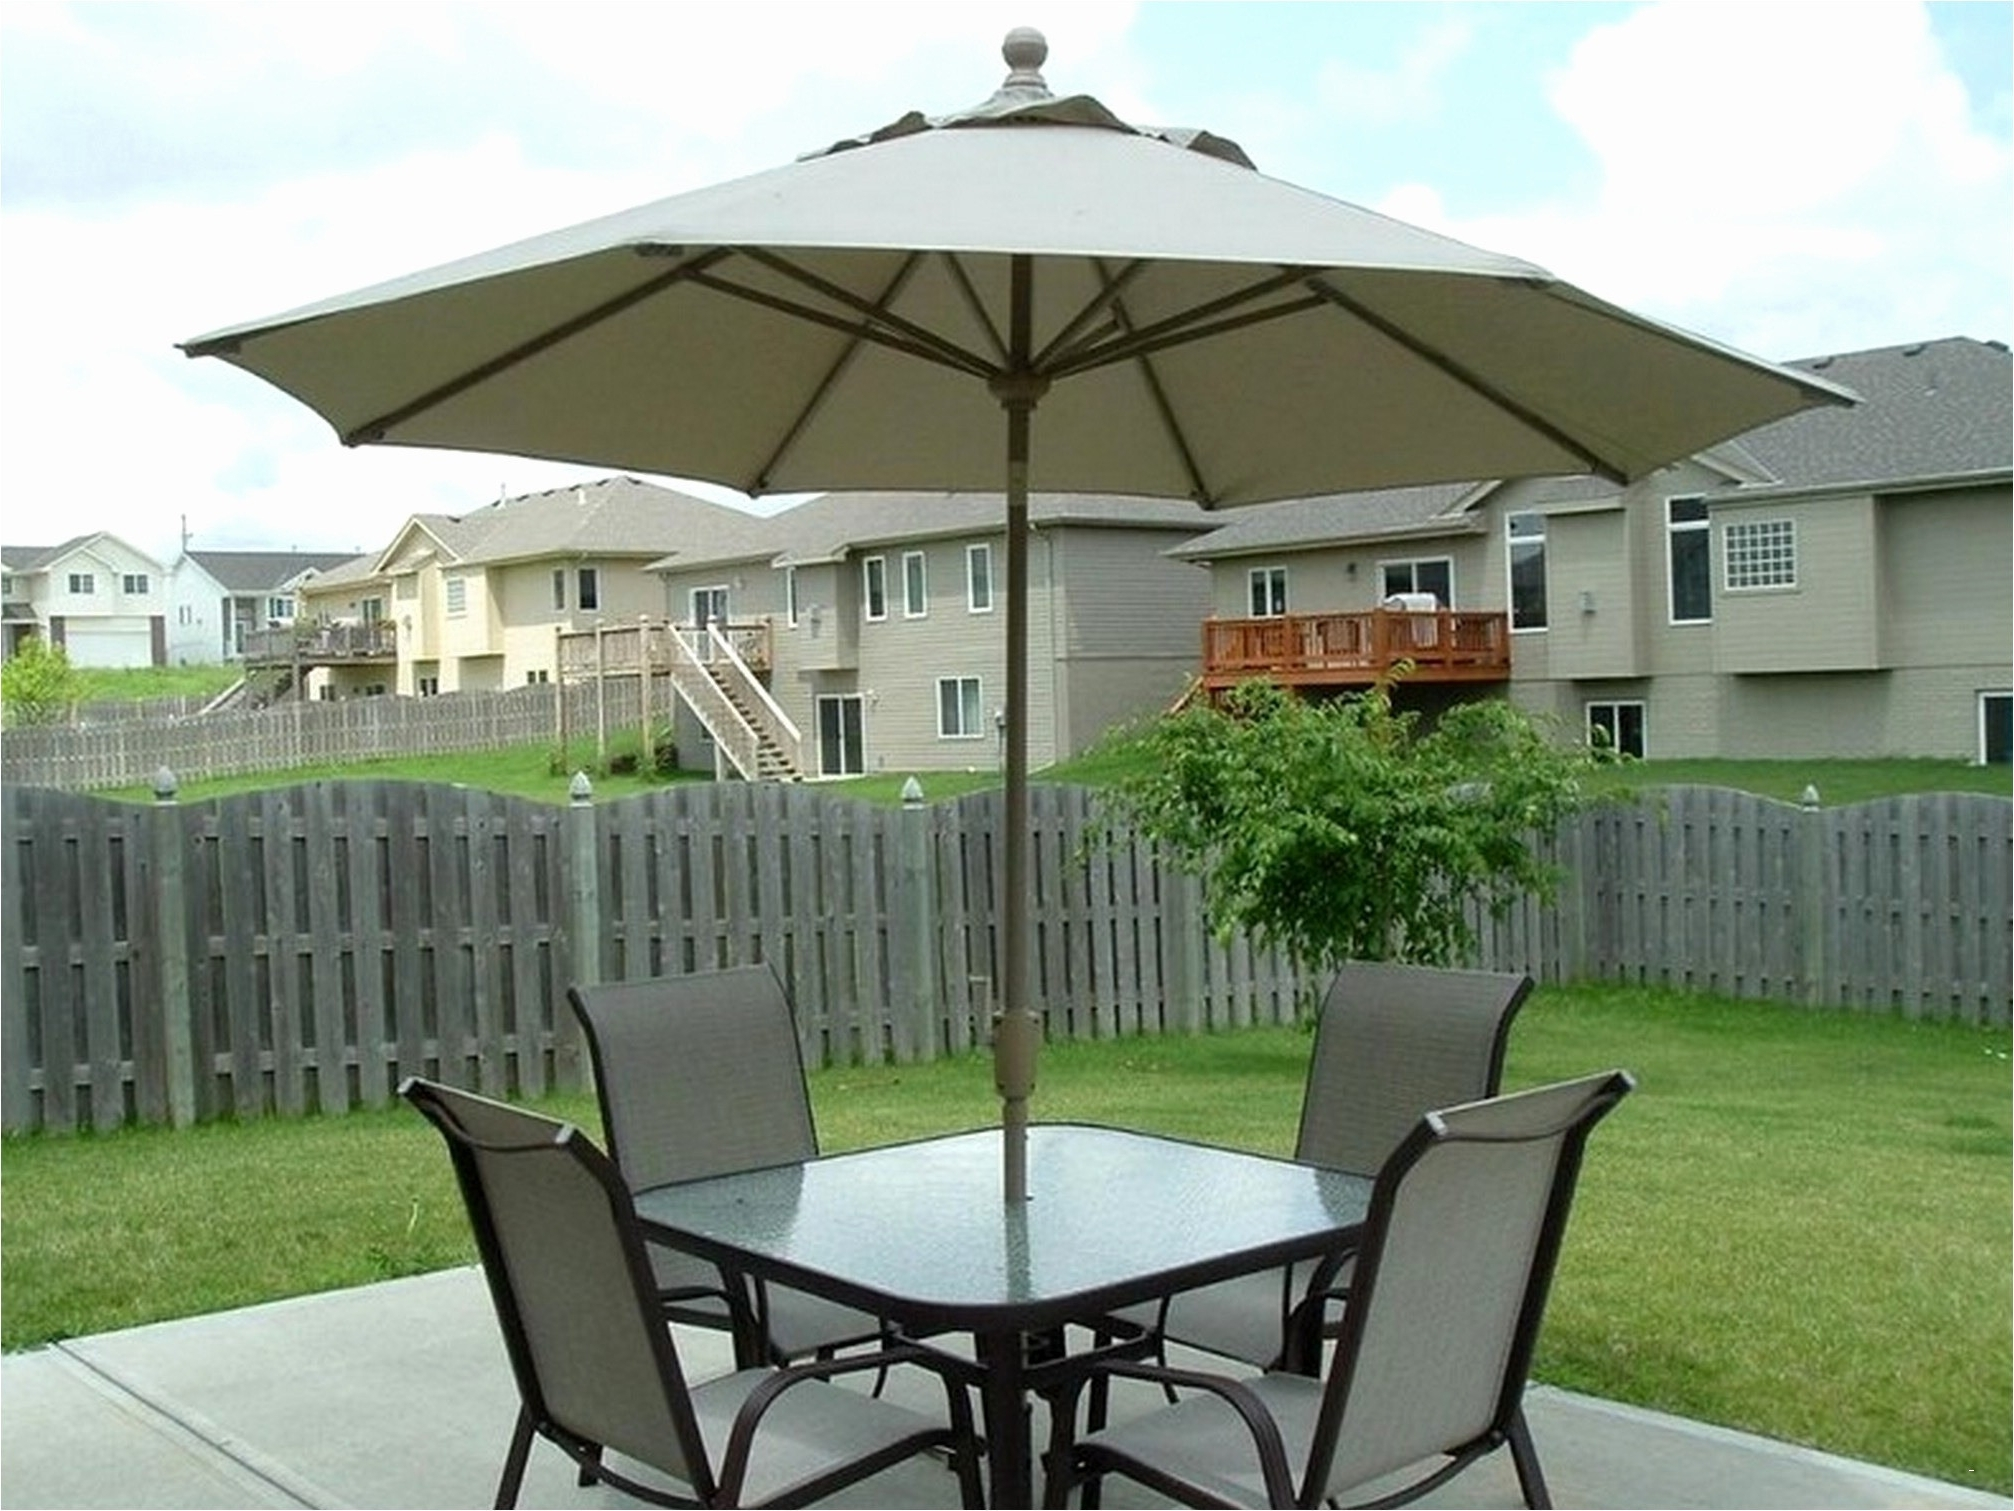 Patio Tables With Umbrella Hole Fresh Small Patio End Table Luxury Regarding Widely Used Small Patio Tables With Umbrellas Hole (View 10 of 20)